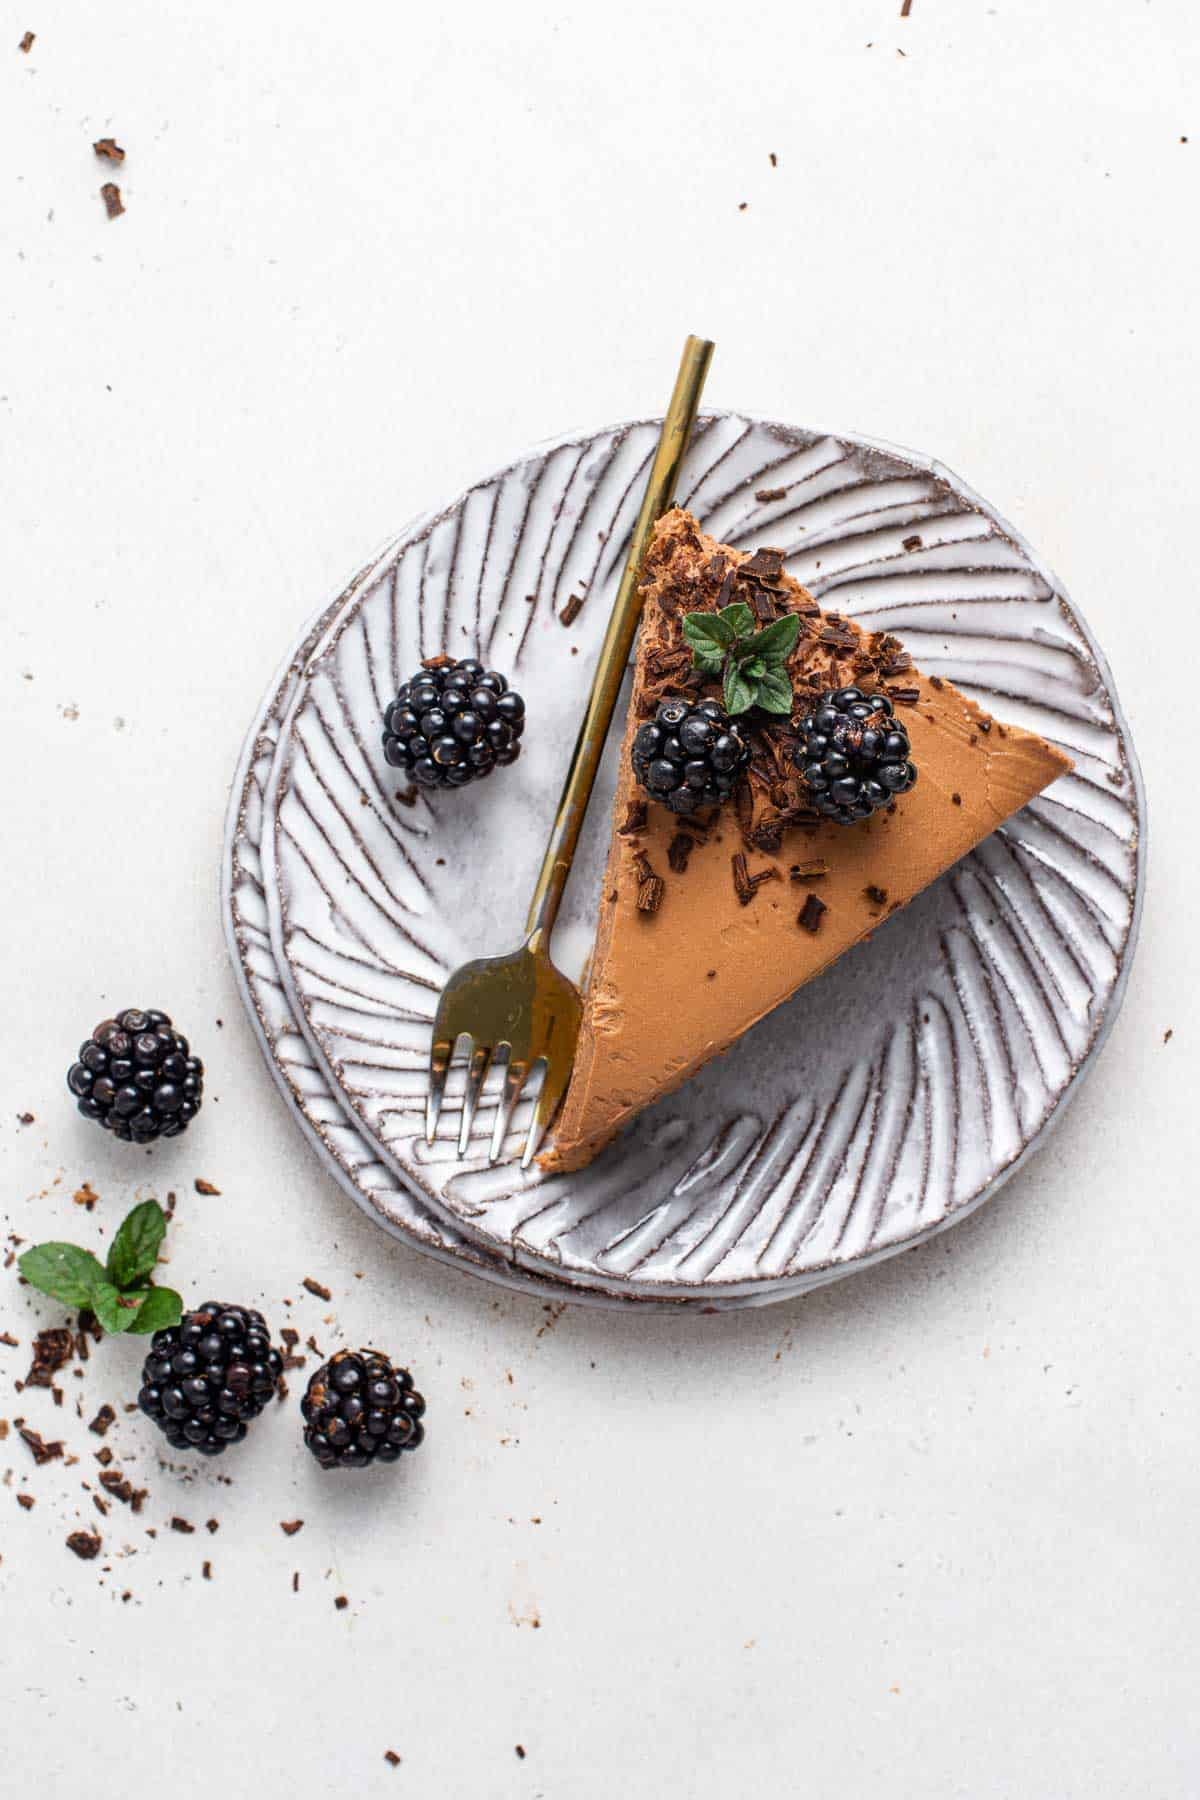 Slice of no bake chocolate cheesecake on a plate with blackberries.